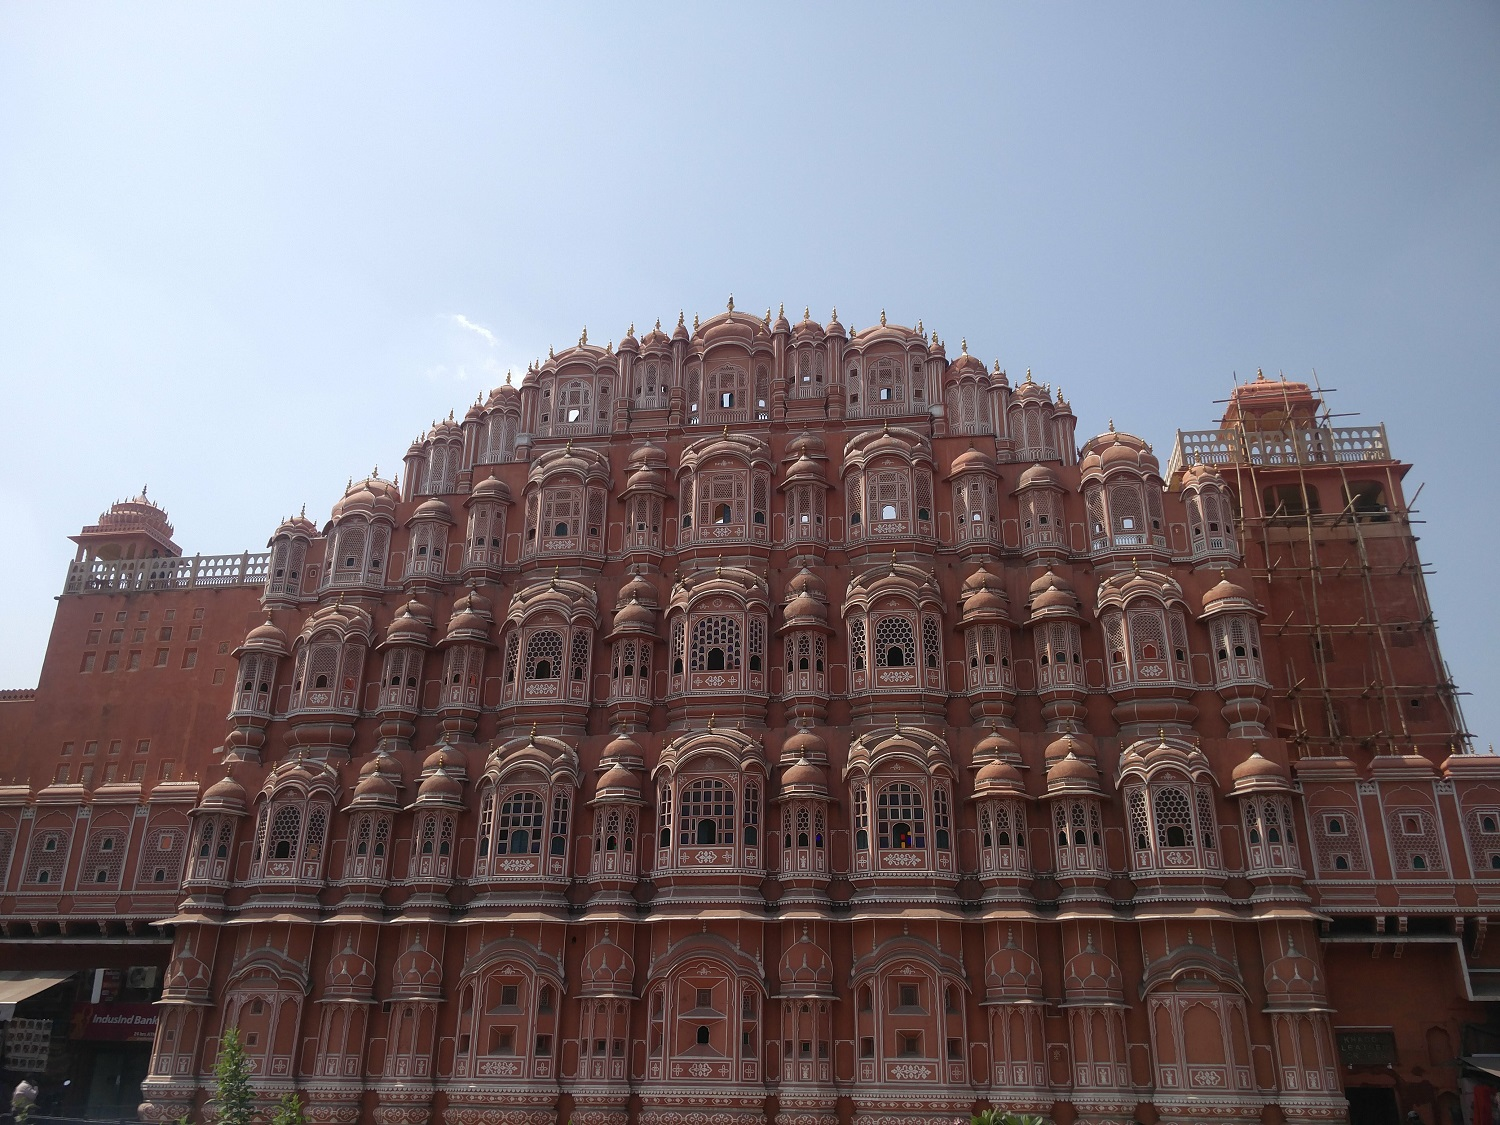 Jaipur, capital of Rajasthan